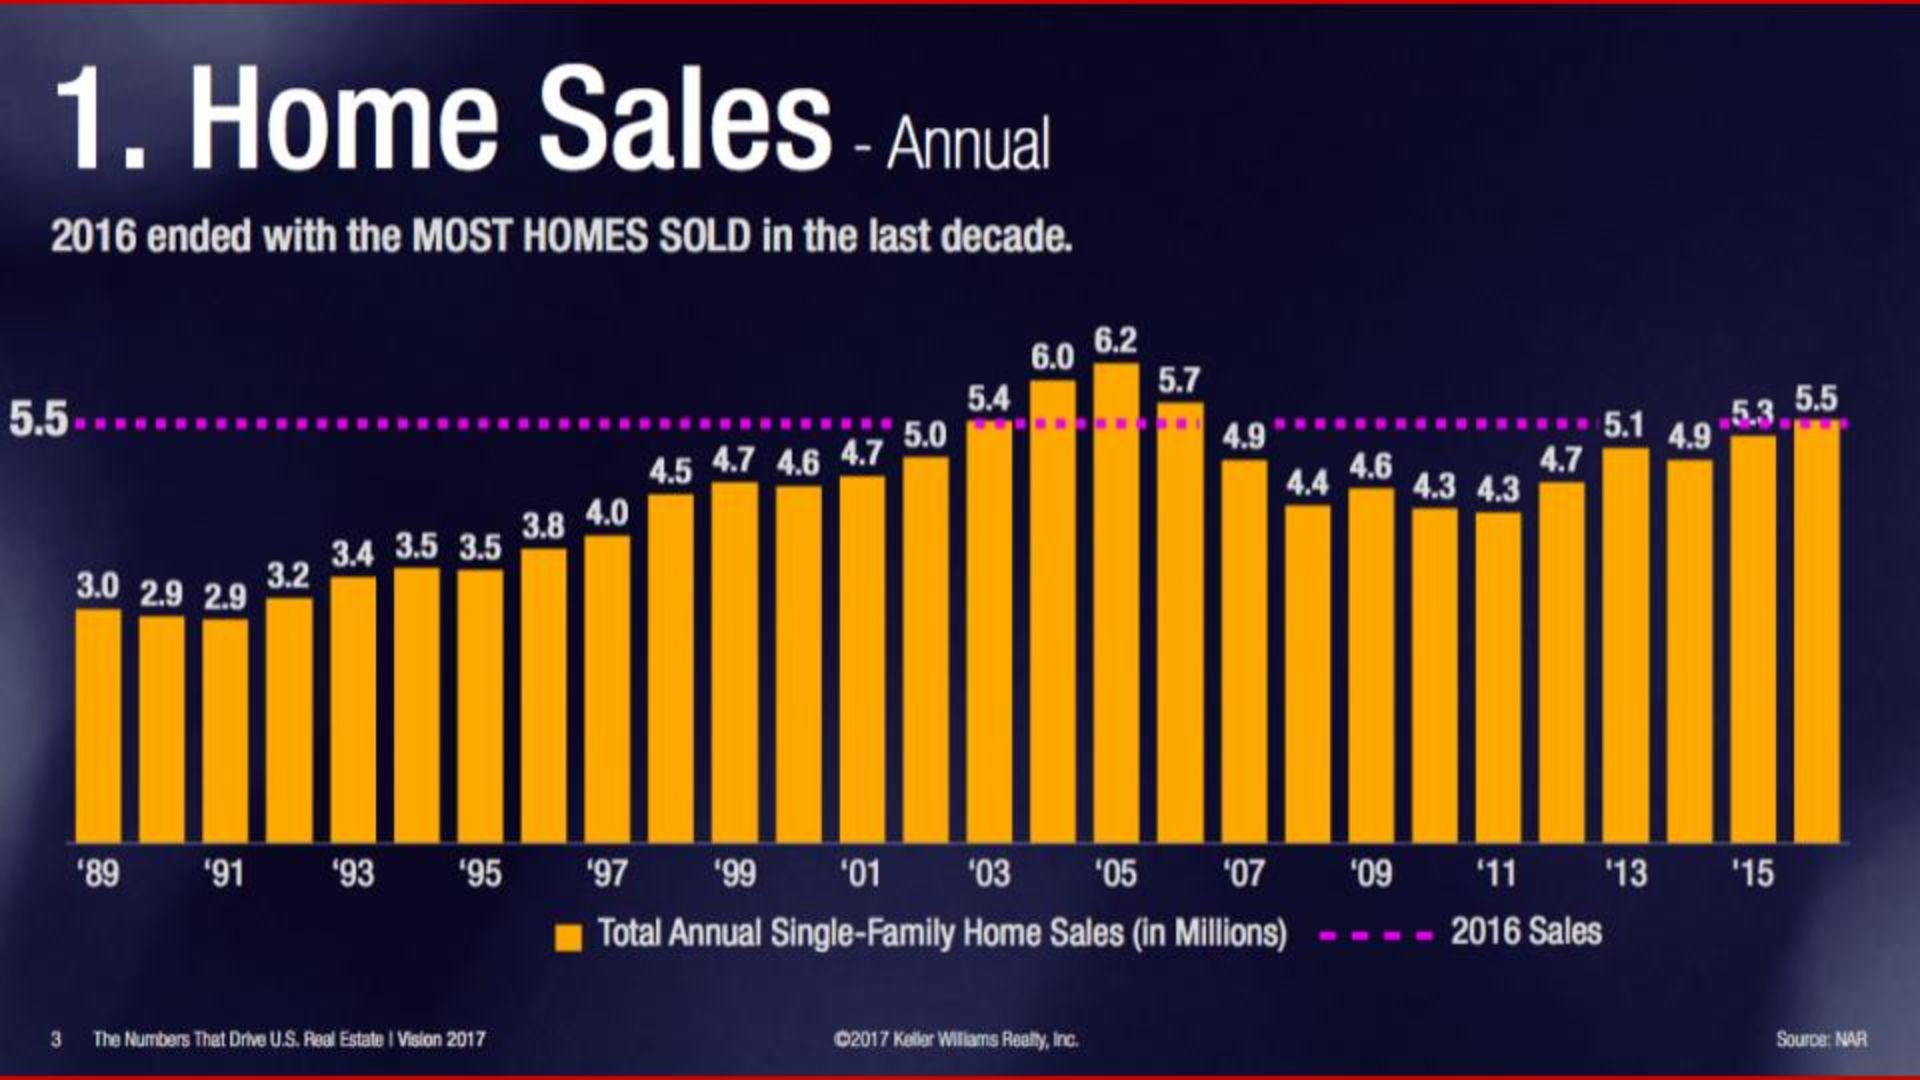 Most Homes Sold in Last Decade